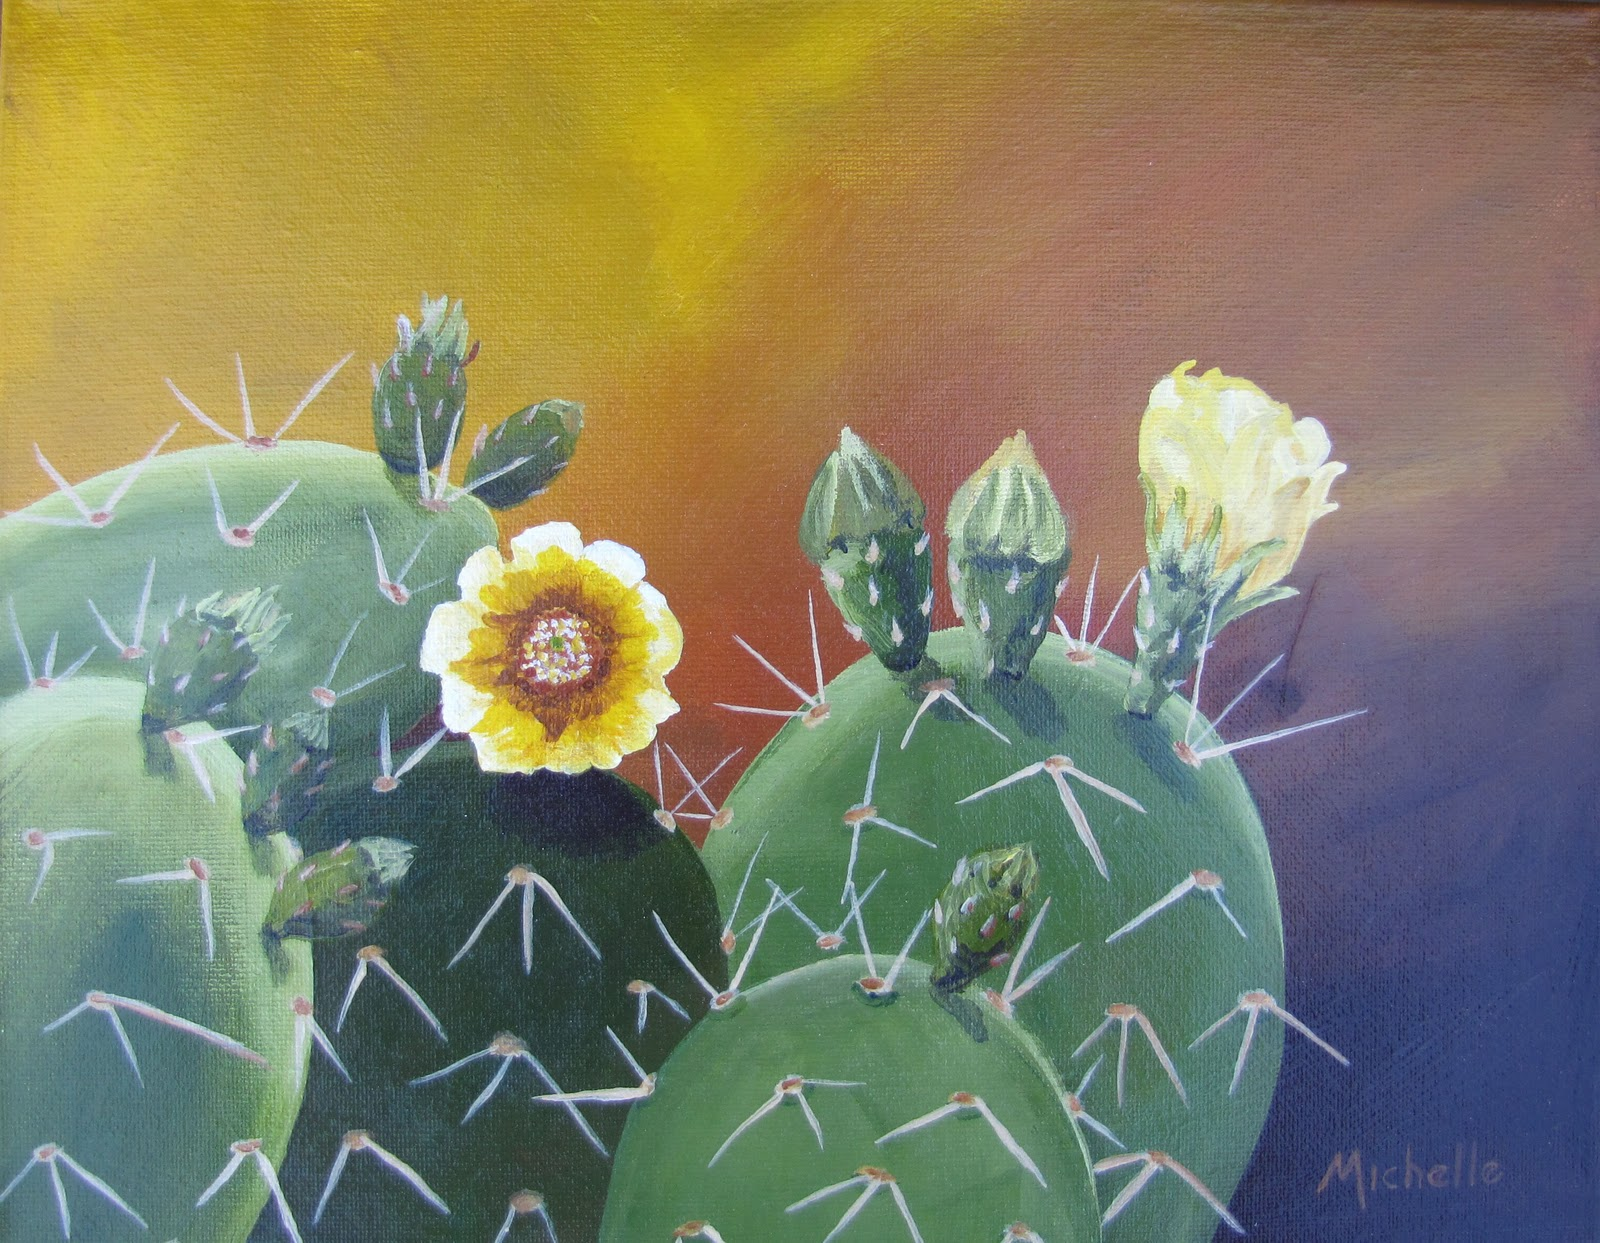 """""""Prickly Pear Cactus with Blossoms 1"""" original fine art by Michelle Wolfe"""